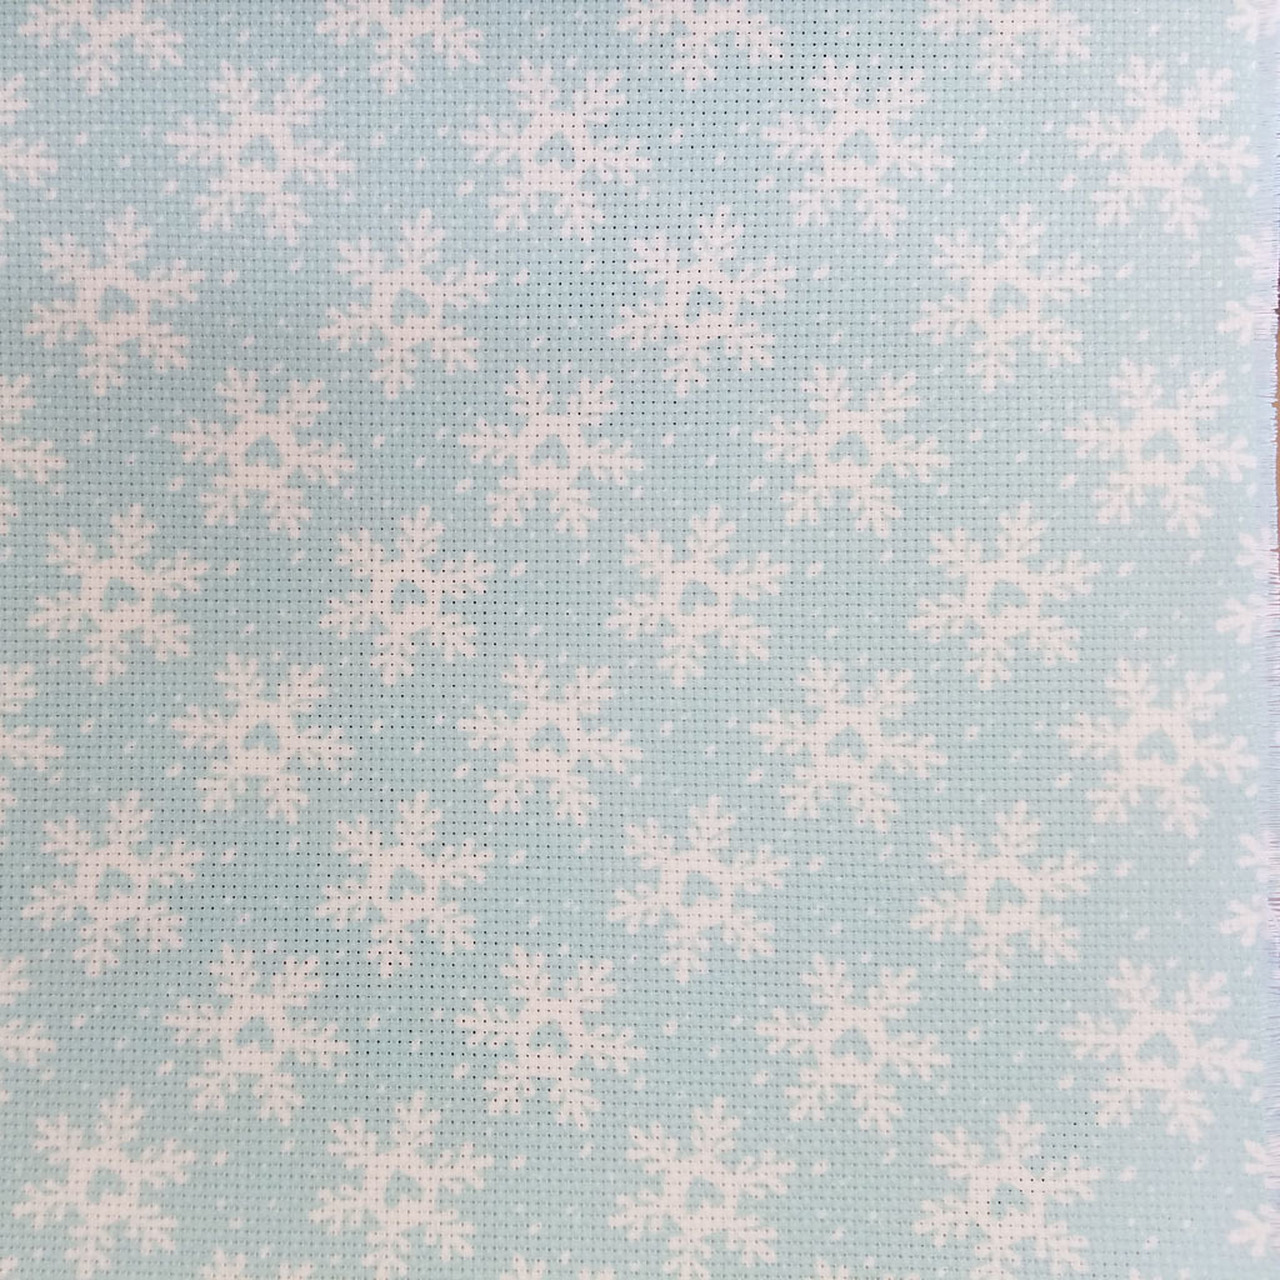 Funky Snowflakes Patterned Cross Stitch Fabric